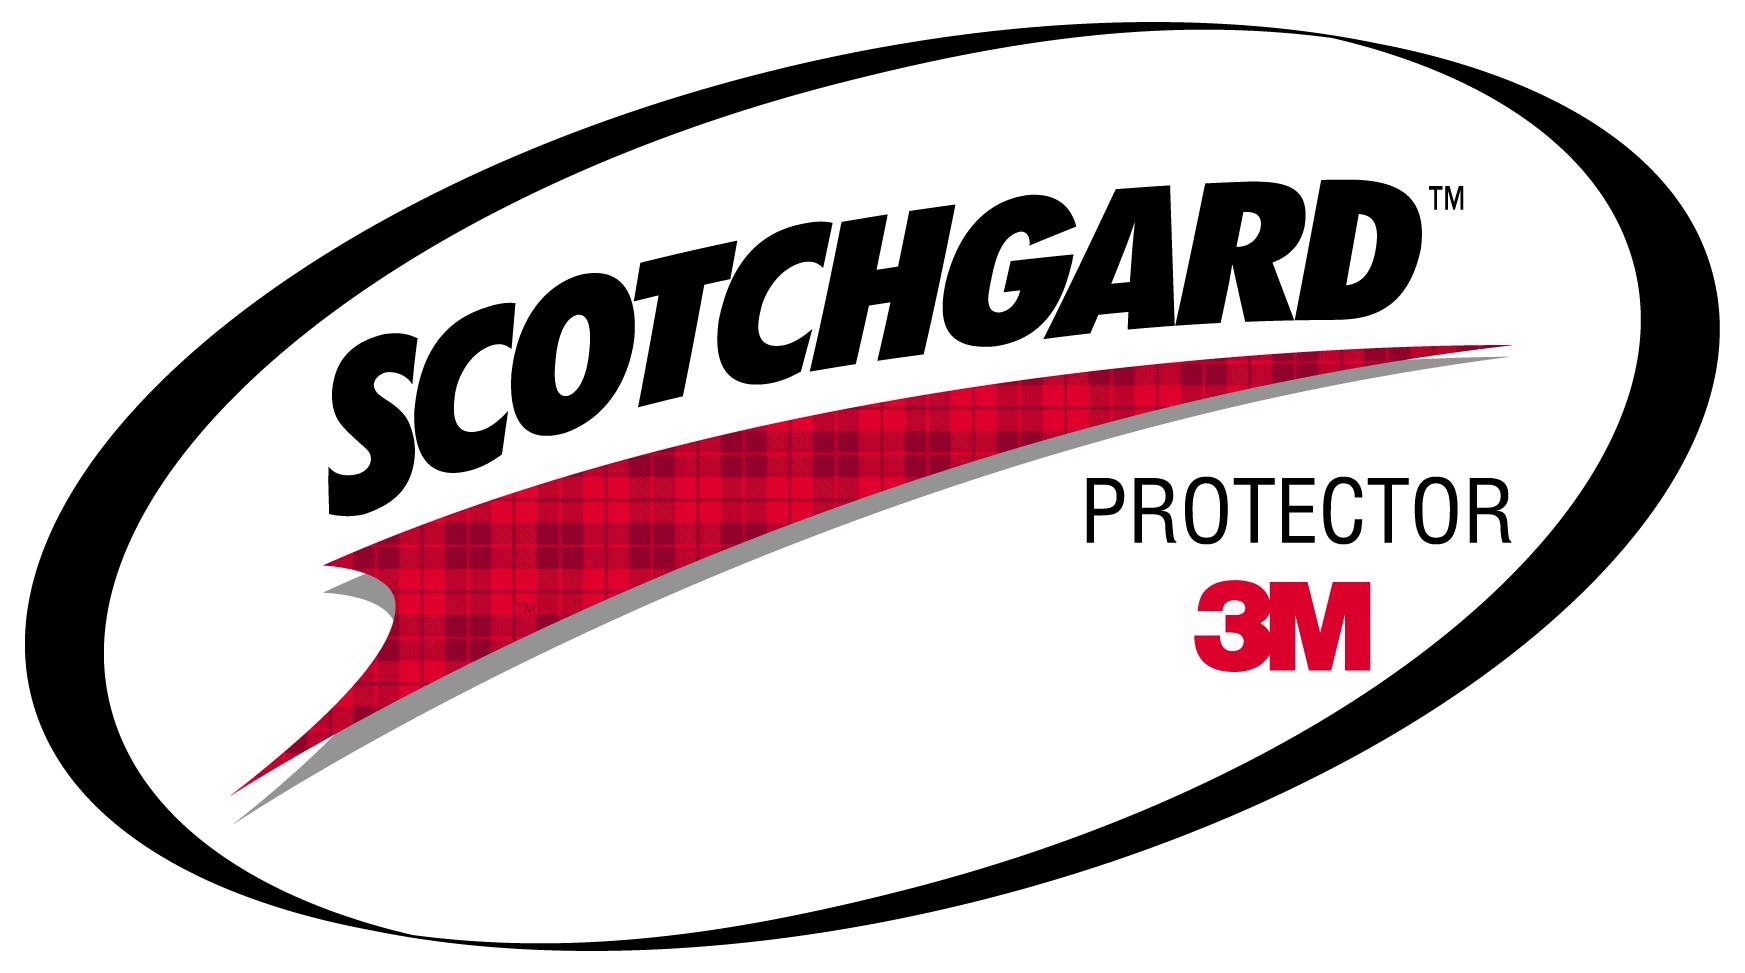 Scotchgard carpet protector!